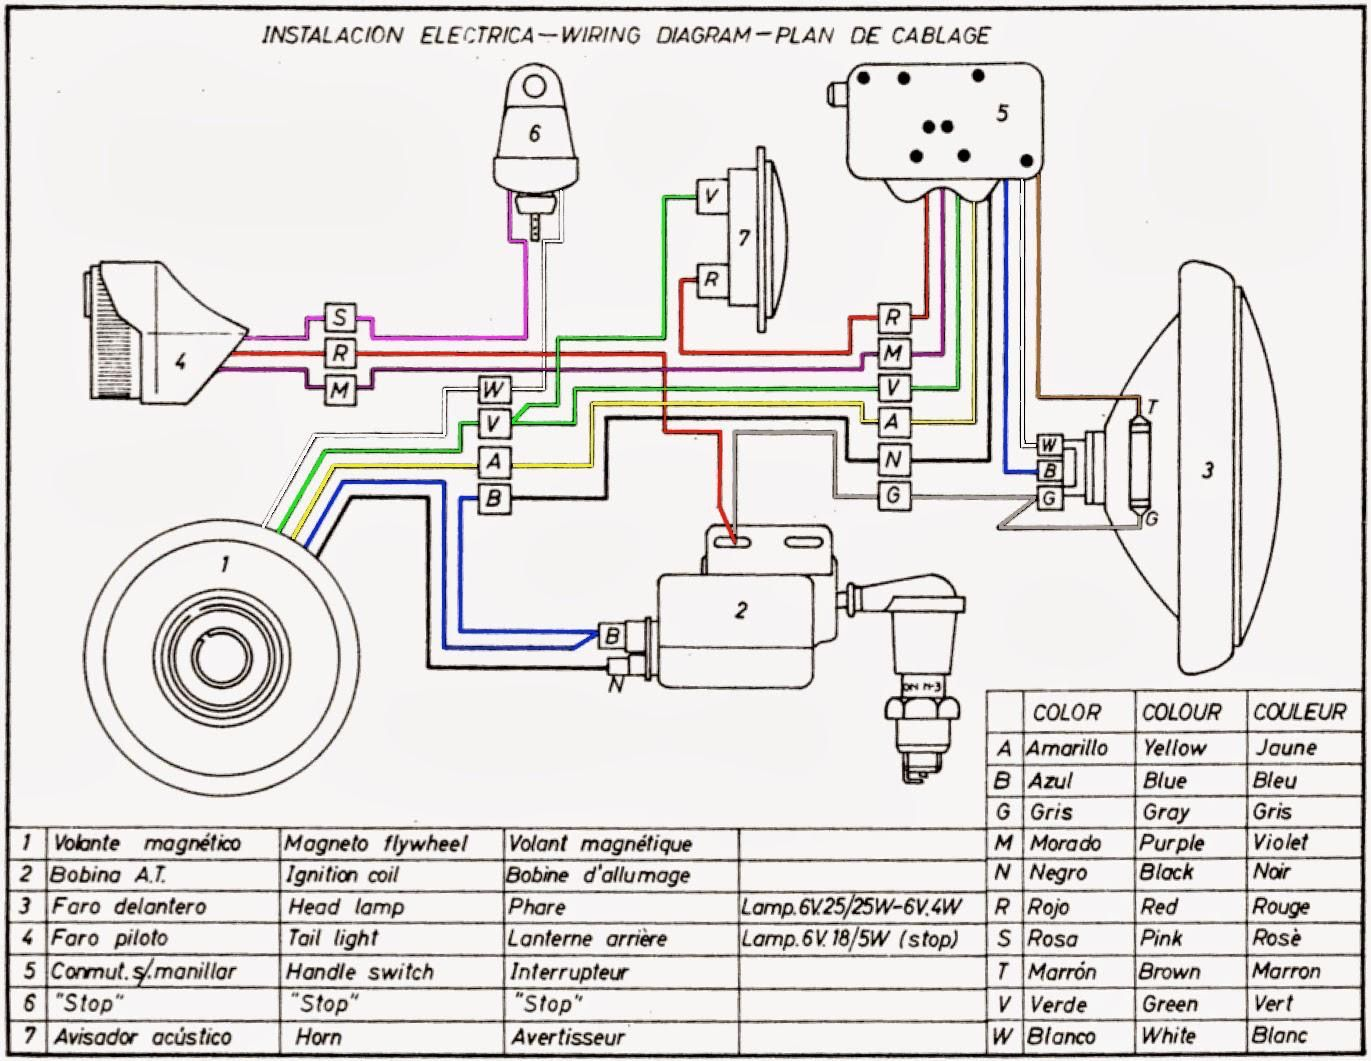 puch wiring diagram wiring diagrampuch wiring diagrams for motorcycles z3 wiring library diagrambultaco wiring diagram wiring [ 1371 x 1061 Pixel ]